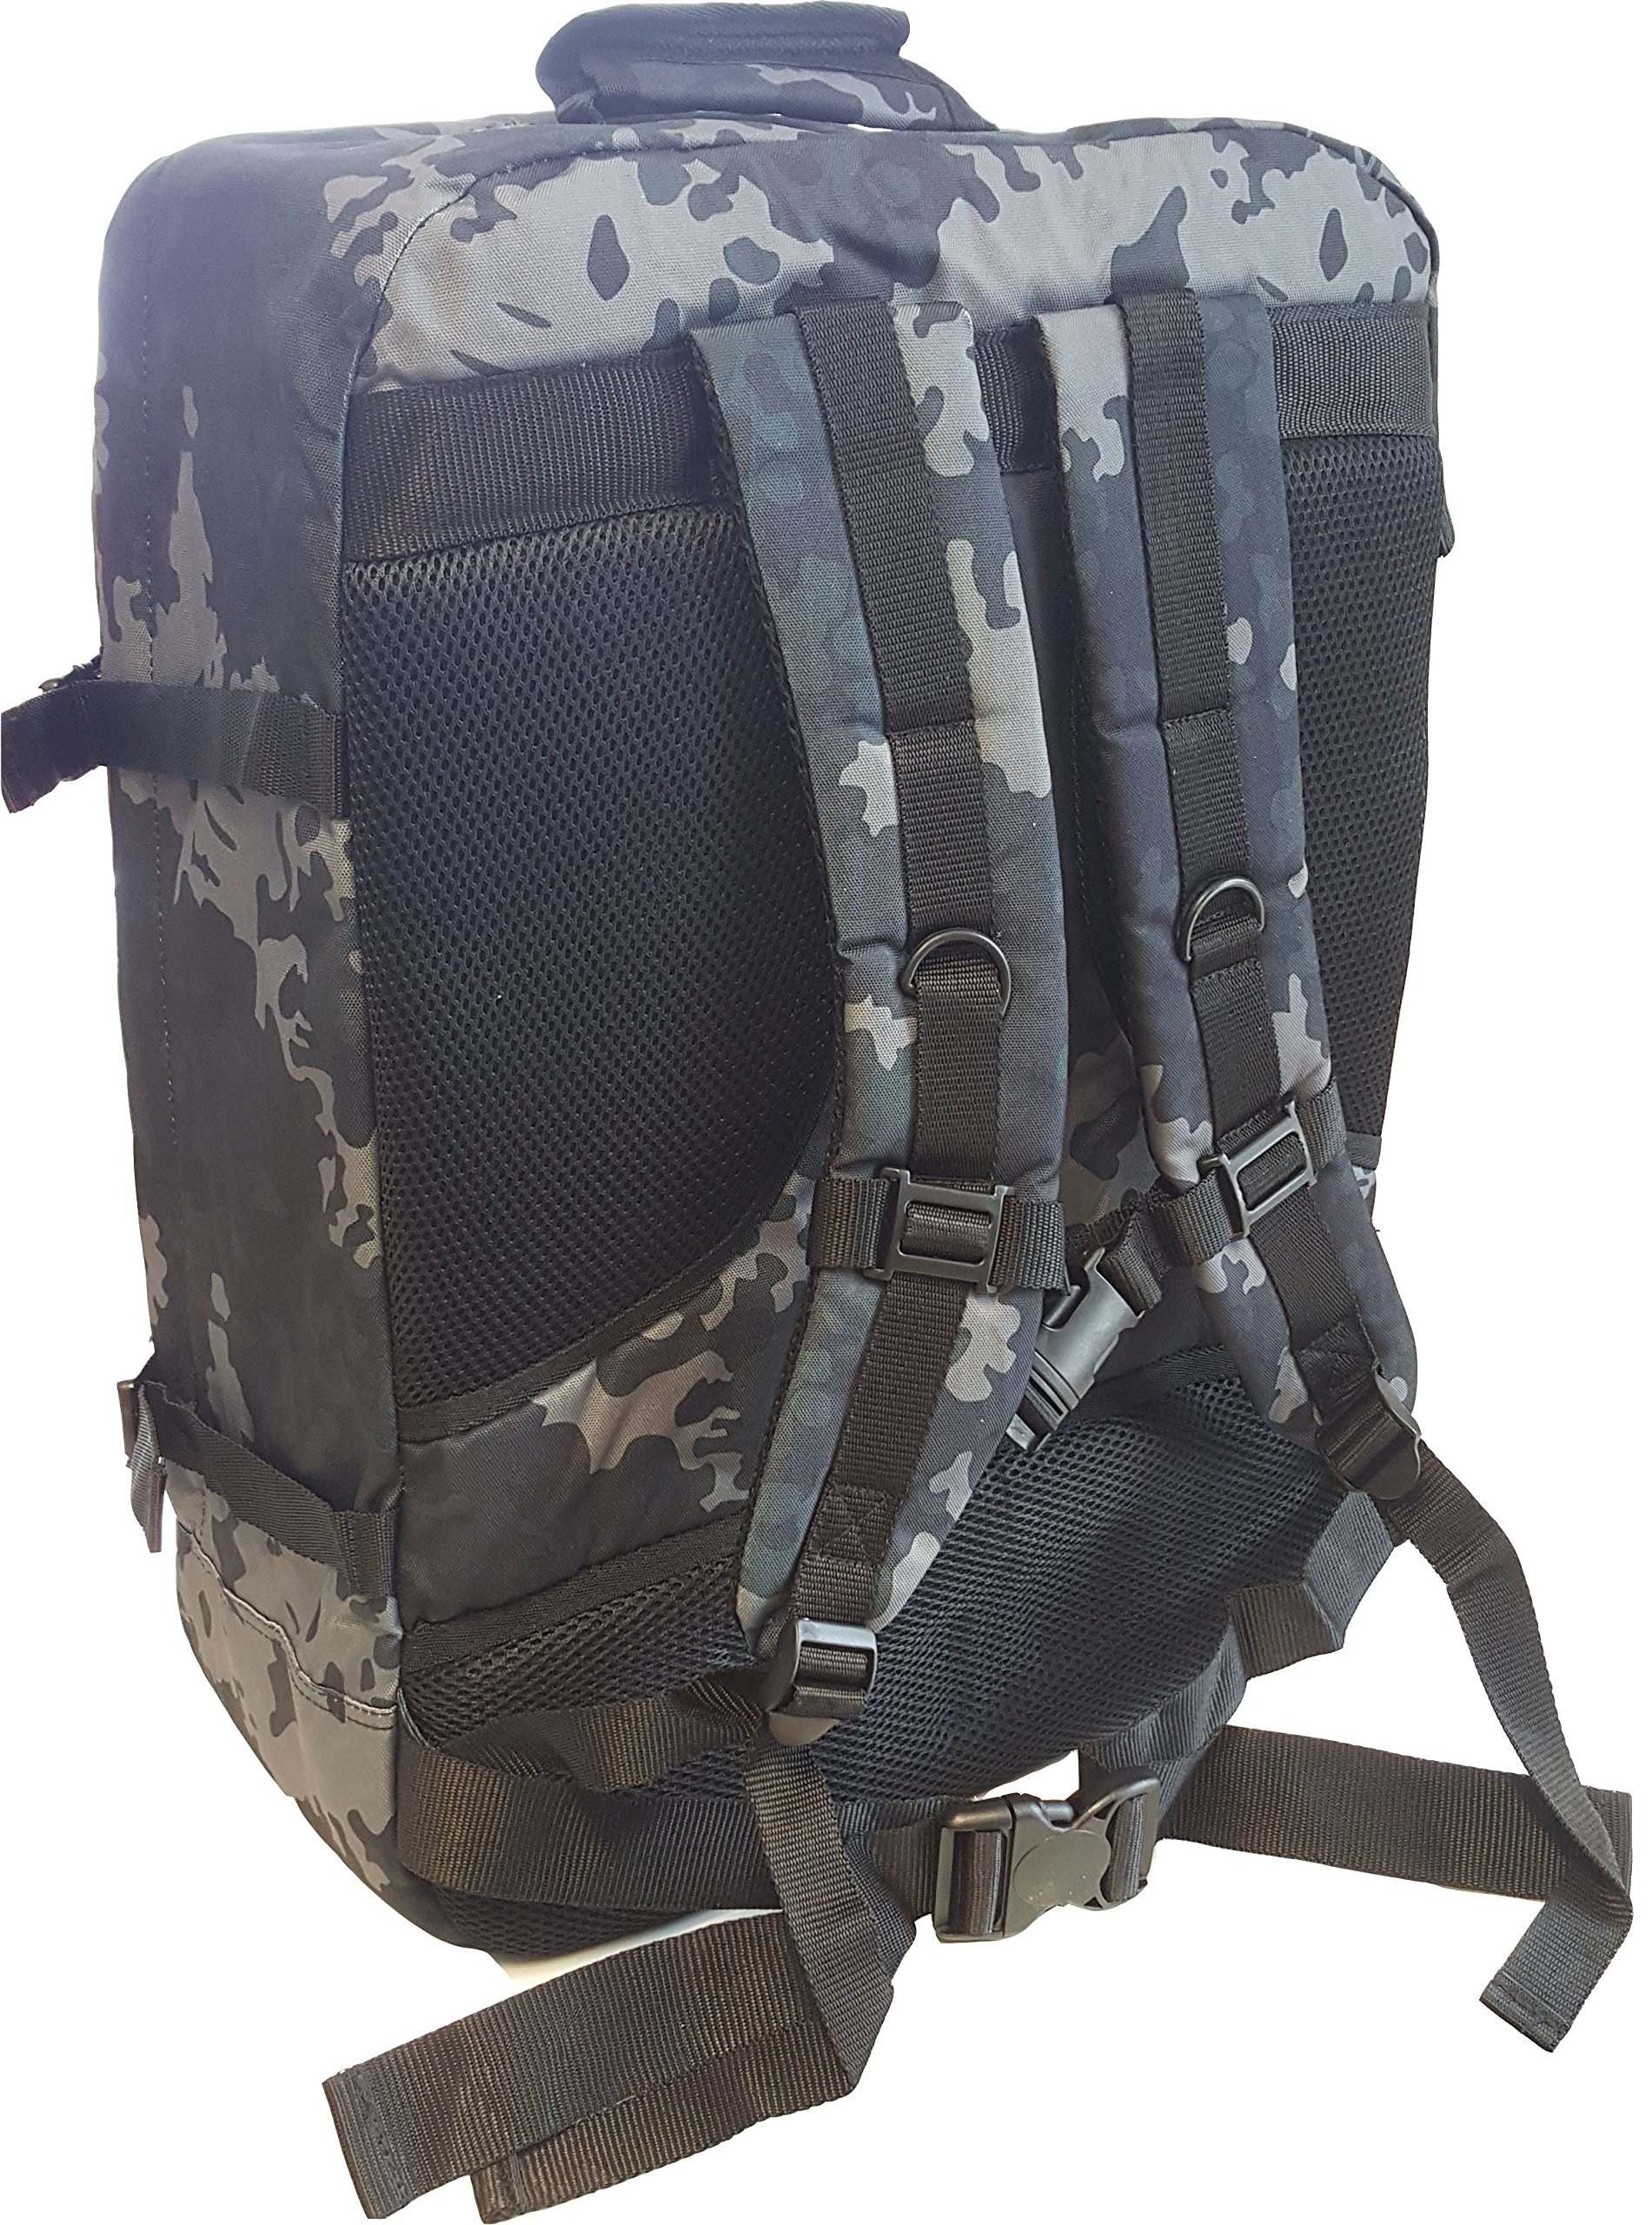 Backpack fits for Parrot Bebop Compatible 1 with Sky Controller 1 and Propguards (Camouflage) by mc-cases